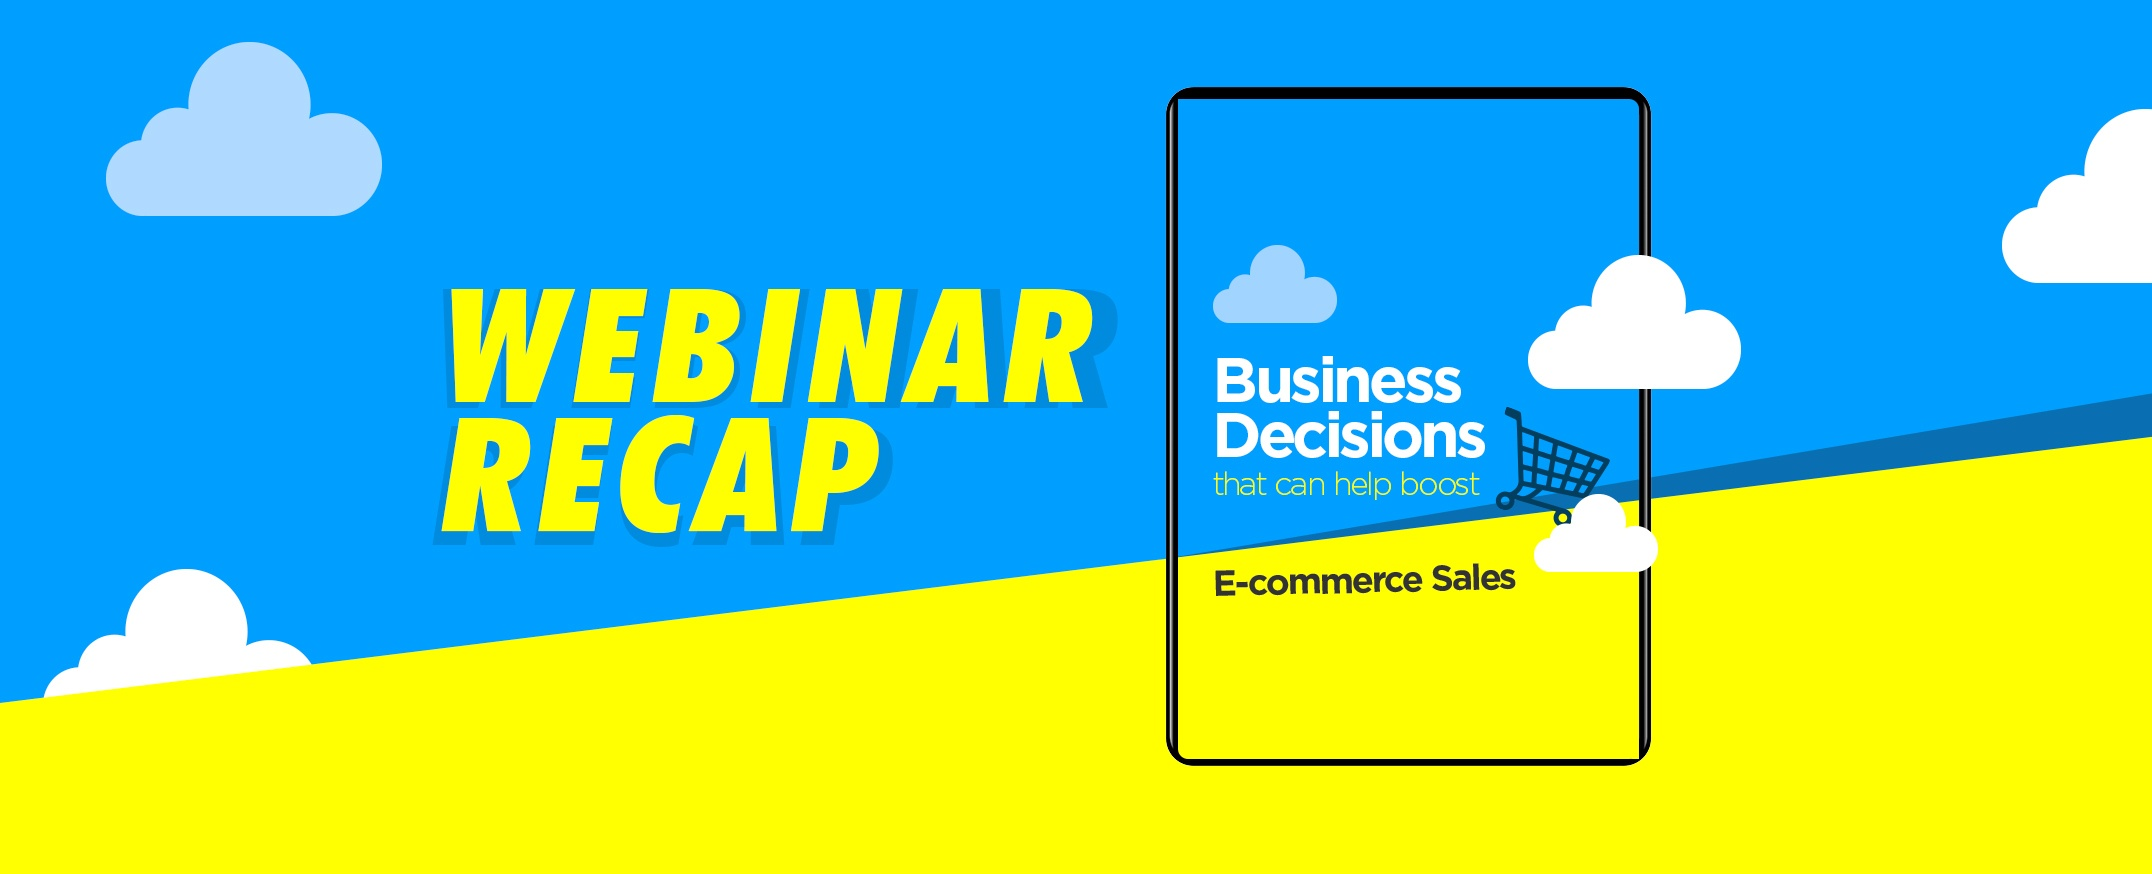 Webinar: Business Decisions that can Help Boost Ecommerce Sales